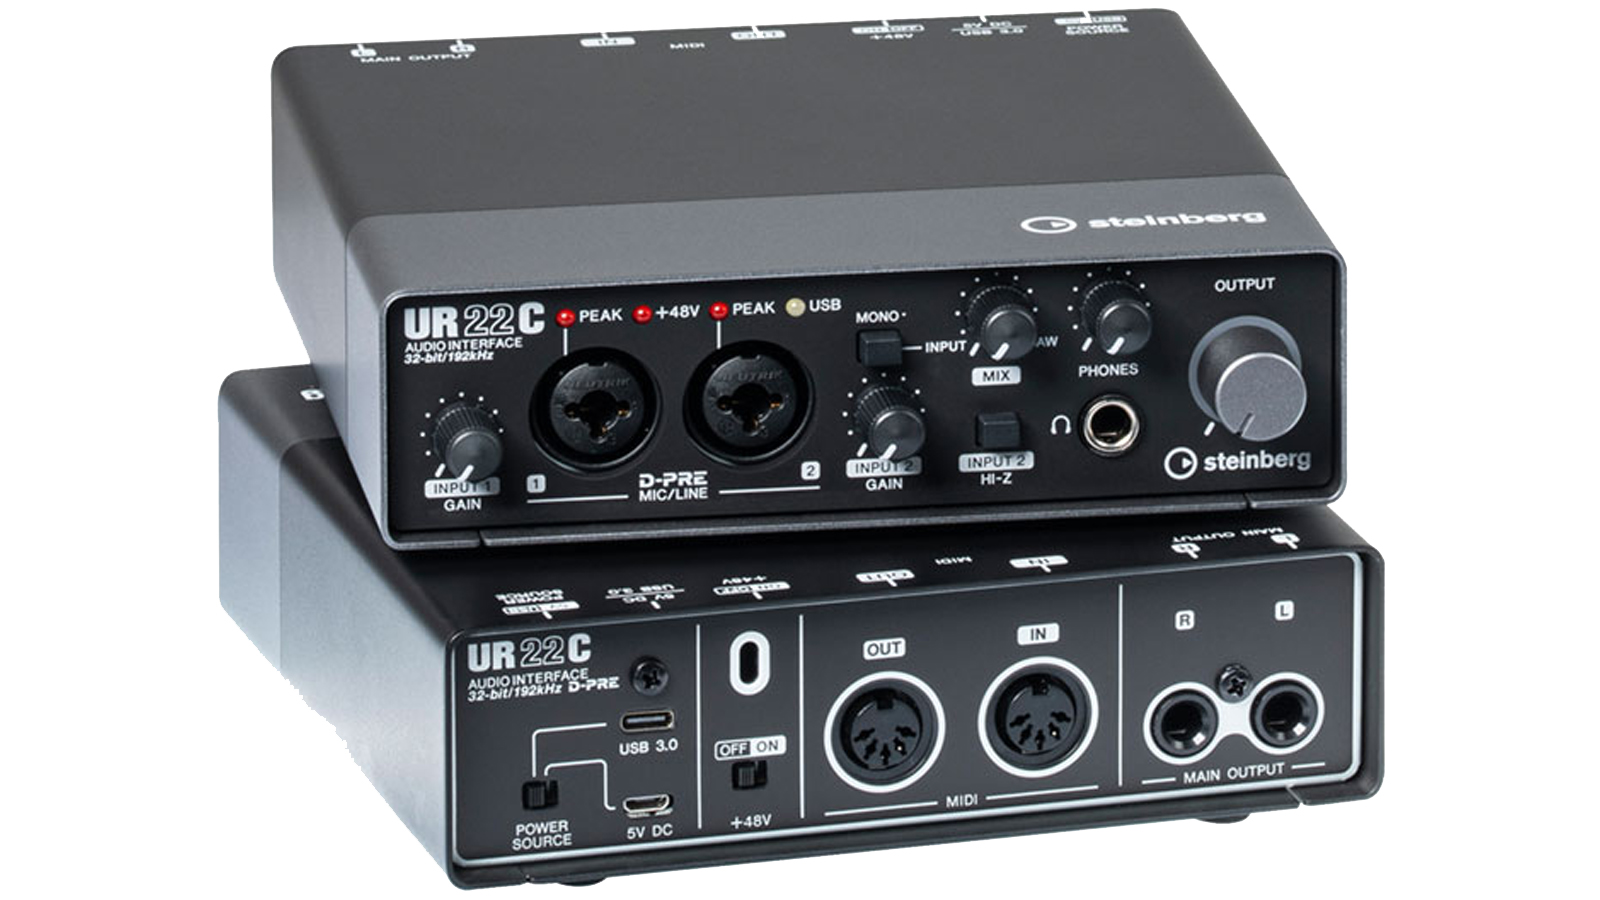 Steinberg UR22C USB 3 Audio Interface inkl. iPad Anschluss